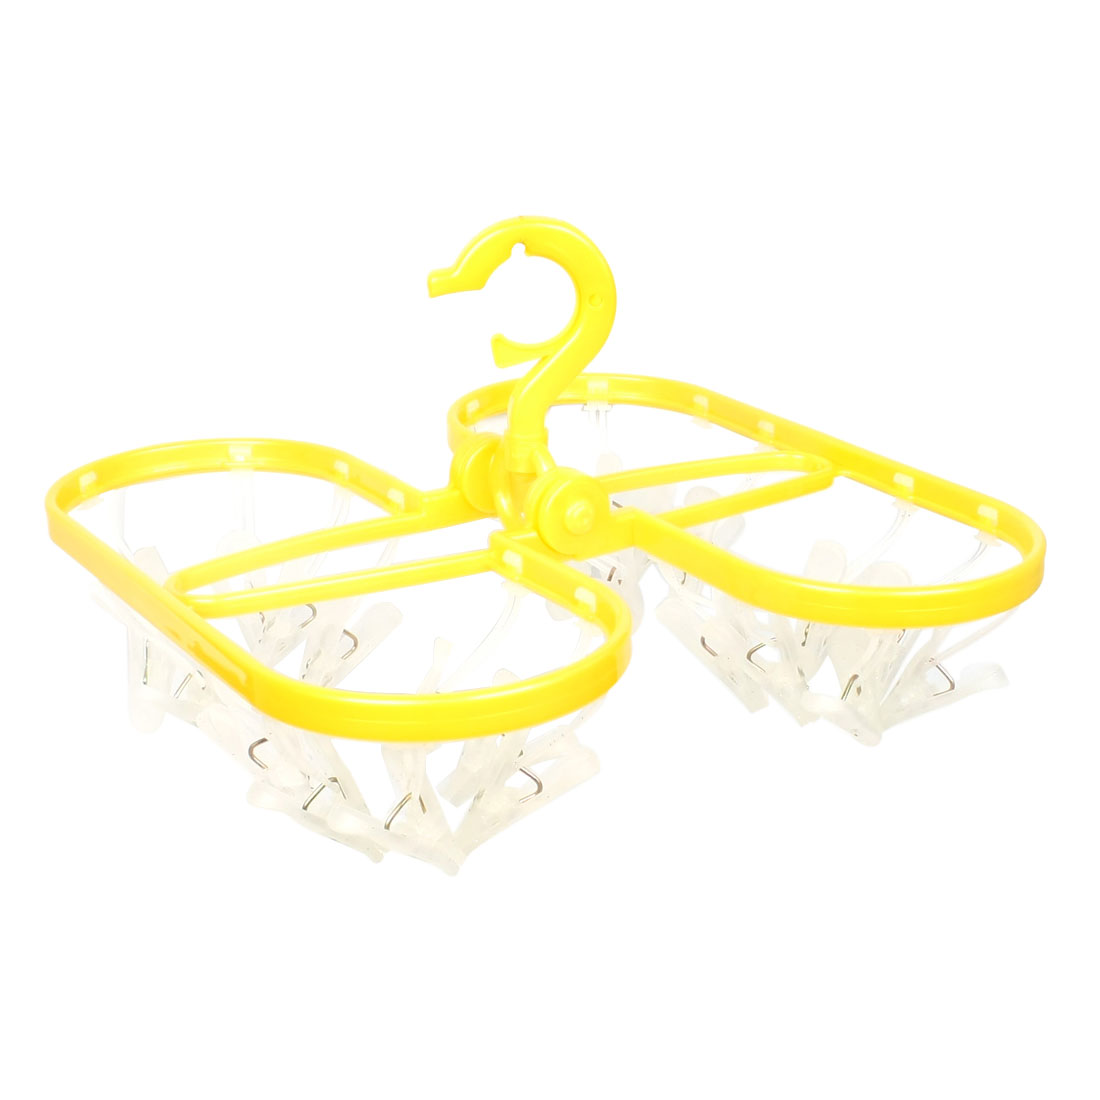 Plastic 24 Pegs Scarf Underwear Hanger Clothes Clip Yellow White